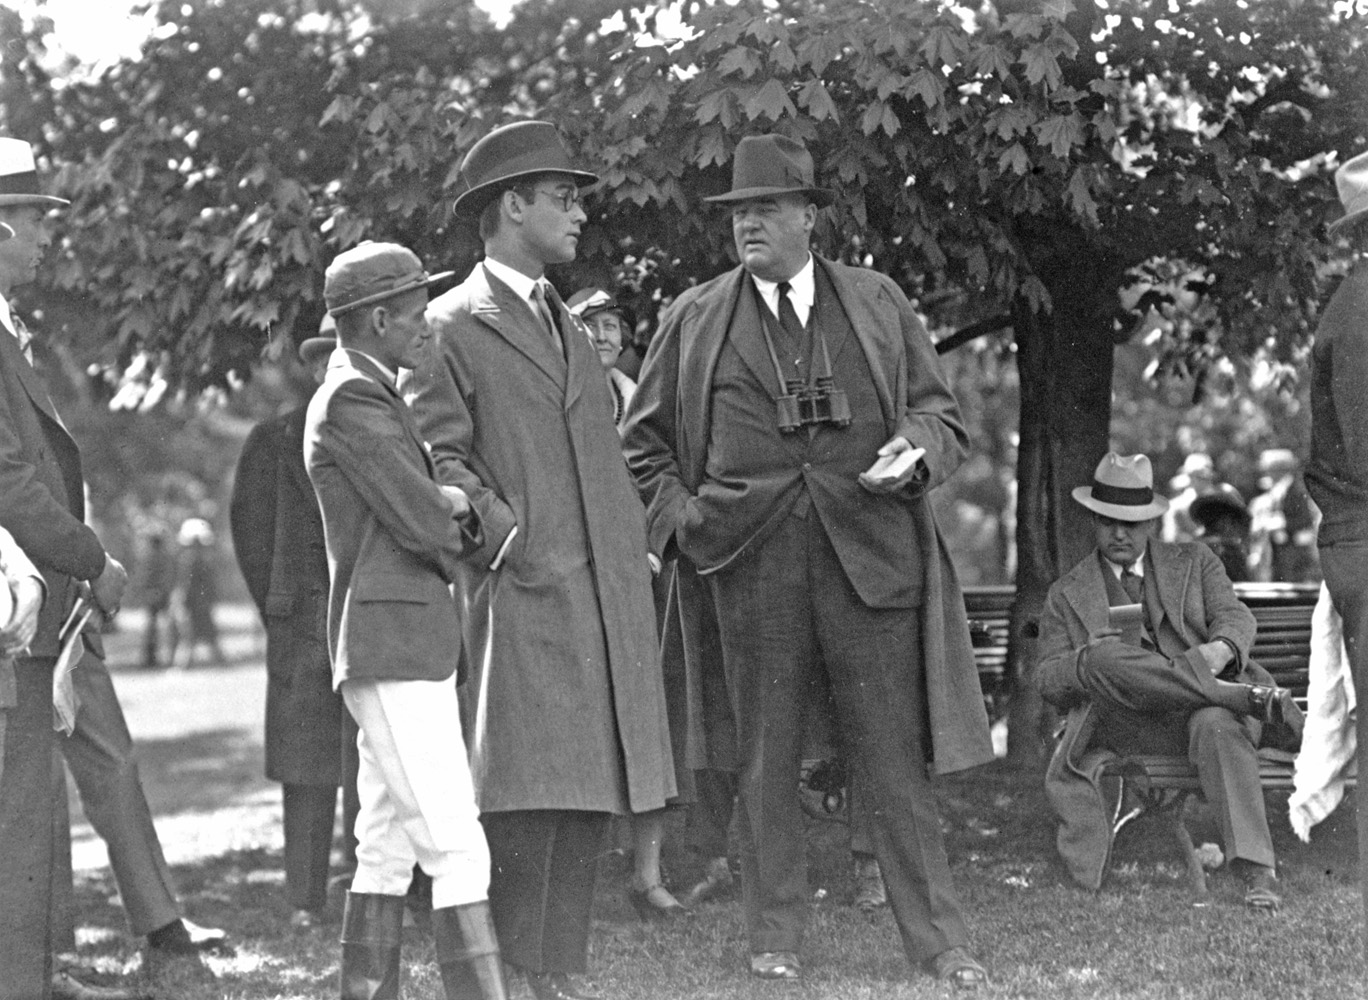 Jockey Lavelle Ensor, John Hay Whitney, and J. Healey (Keeneland Library Cook Collection/Museum Collection)